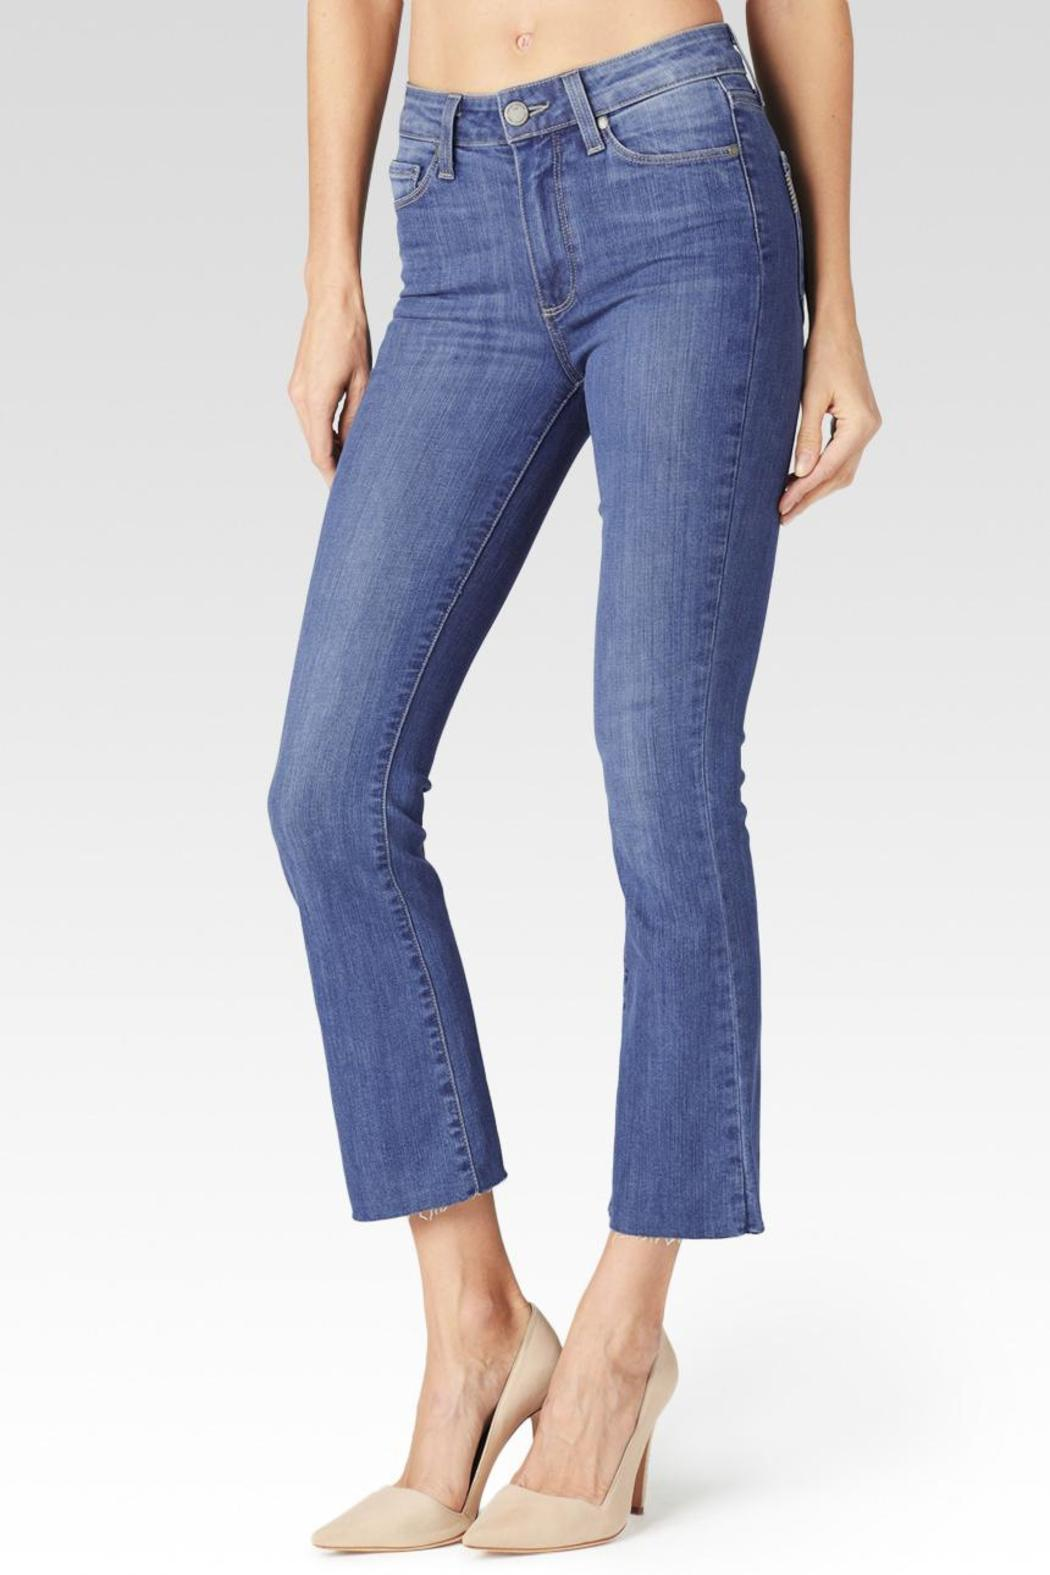 Paige Colette Cropped Flare Jeans - Main Image